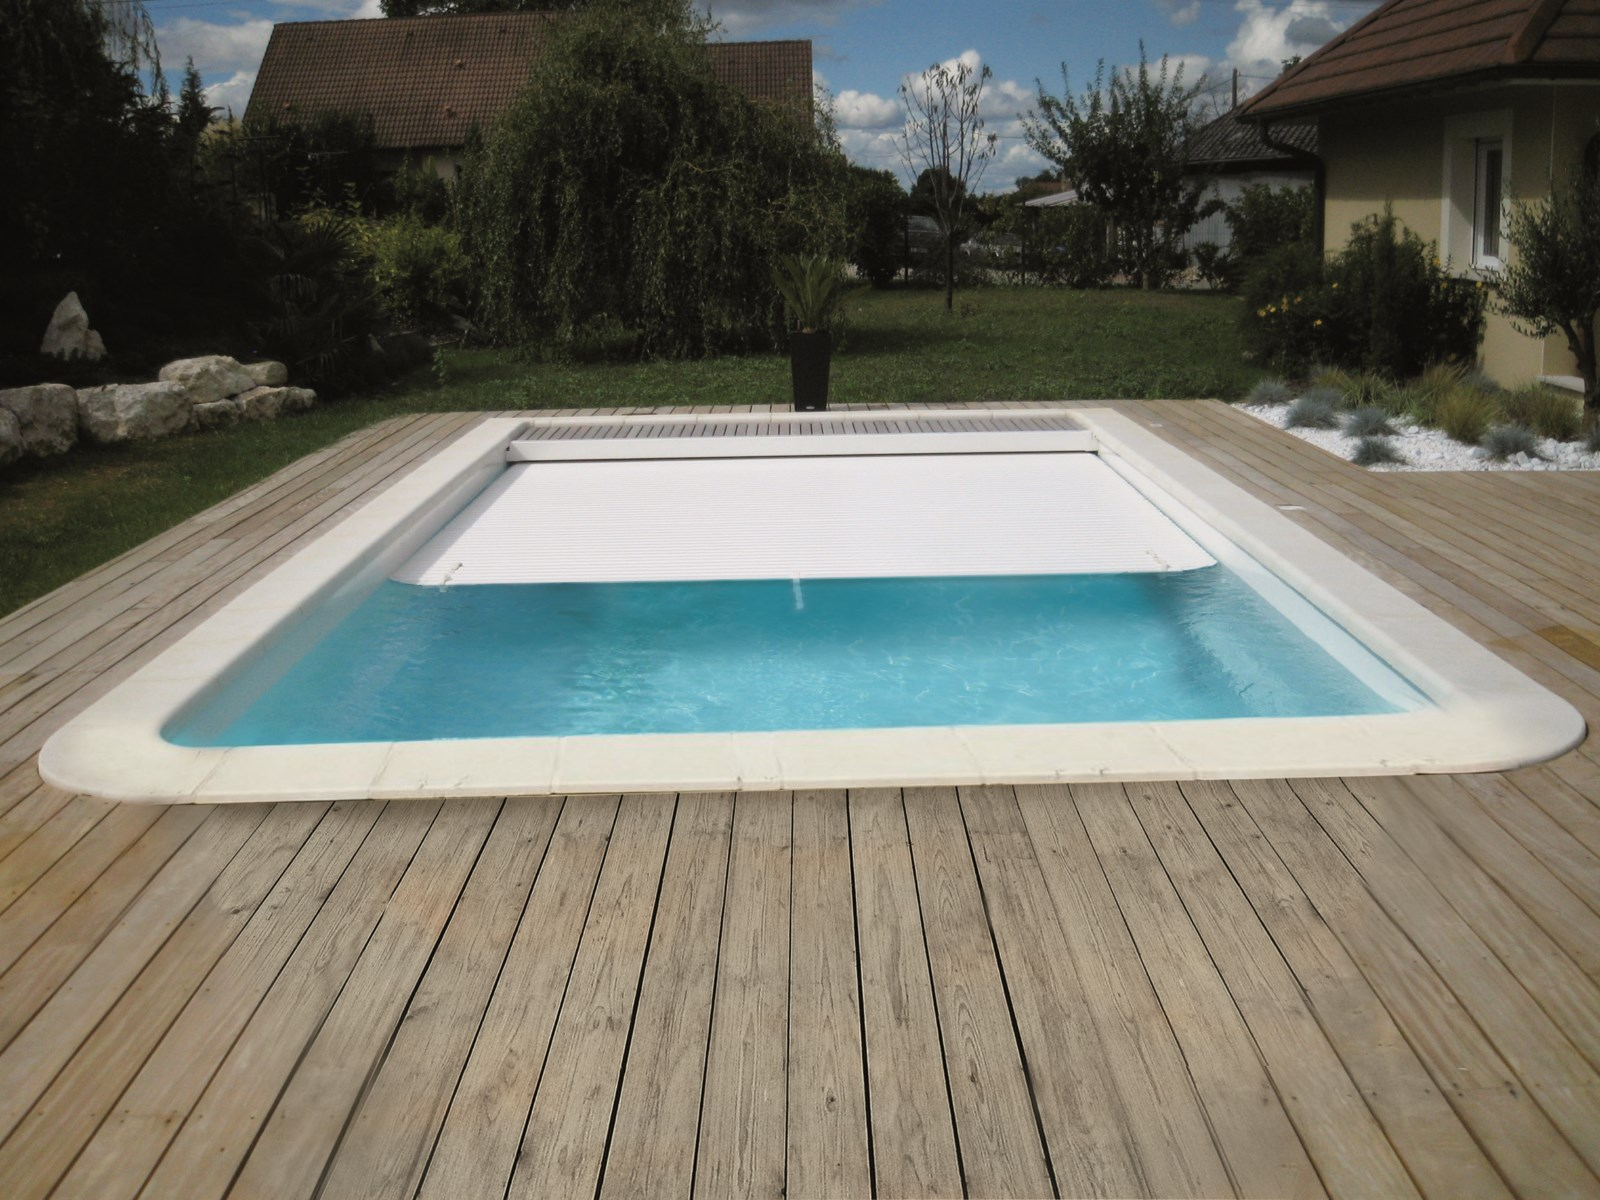 Piscine coque polyester rectangulaire mod le born o avec for Piscine coque polyester d exposition